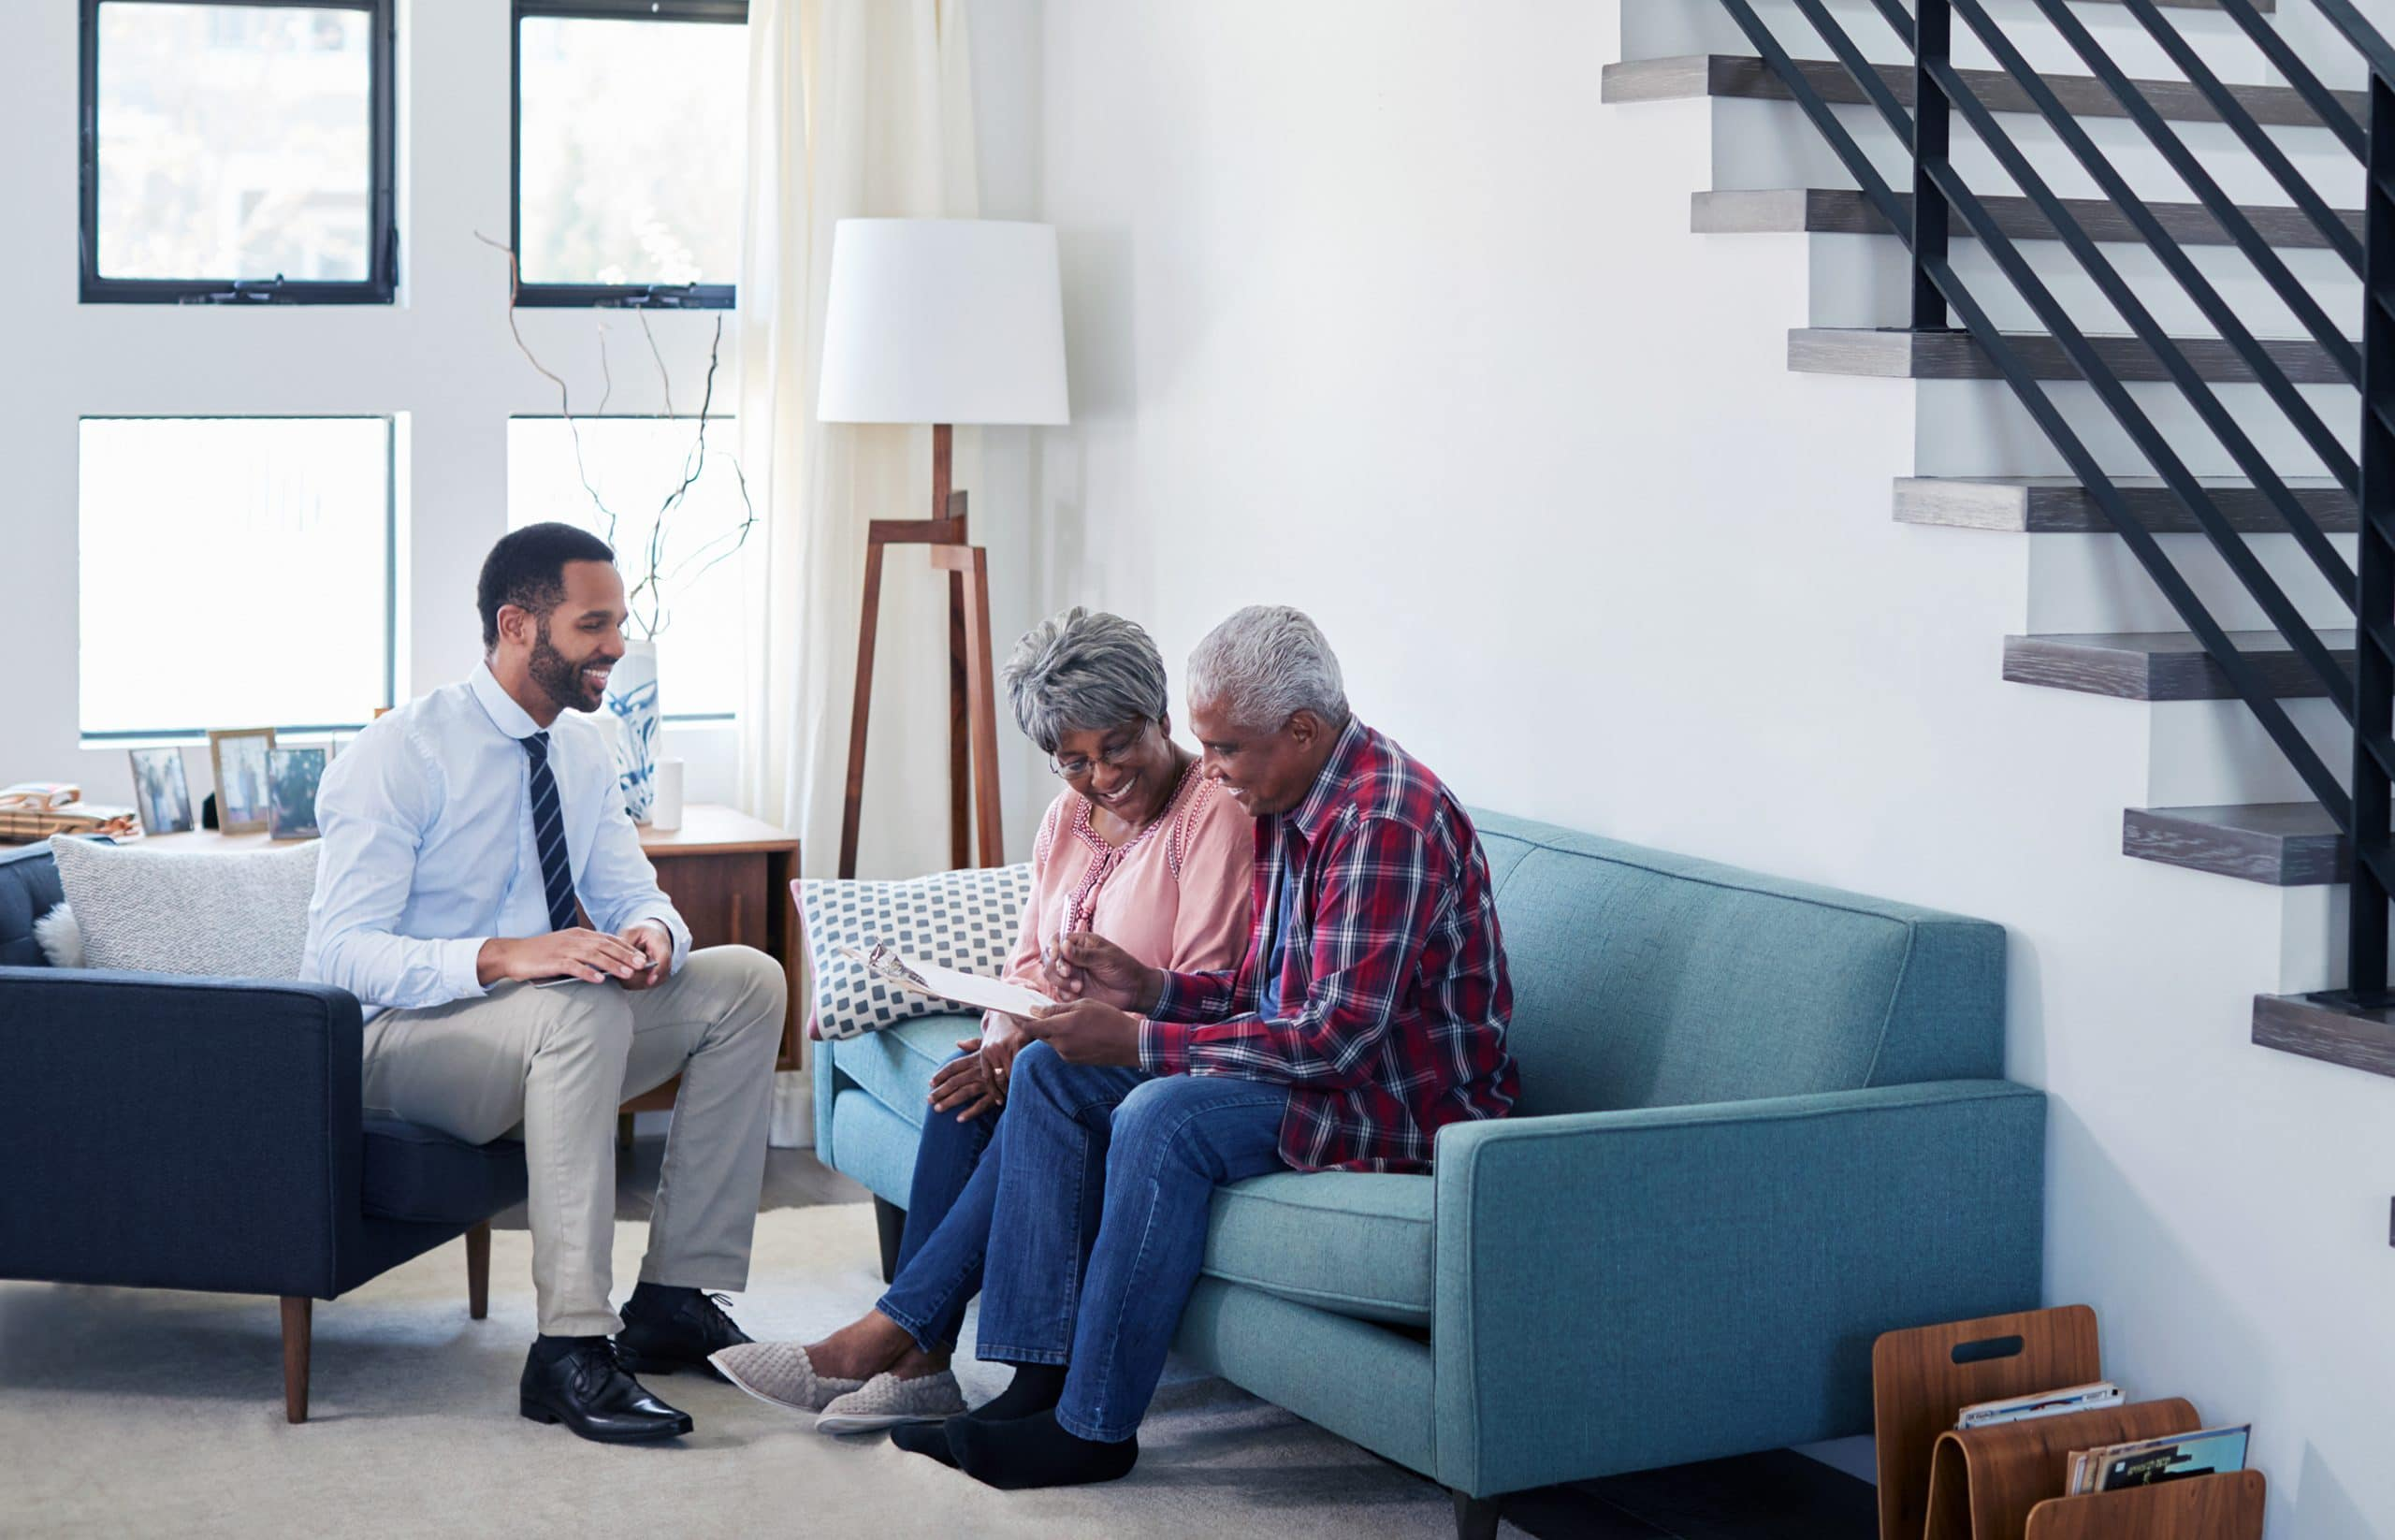 This is an image of a representative speaking with a family effected by lung cancer.